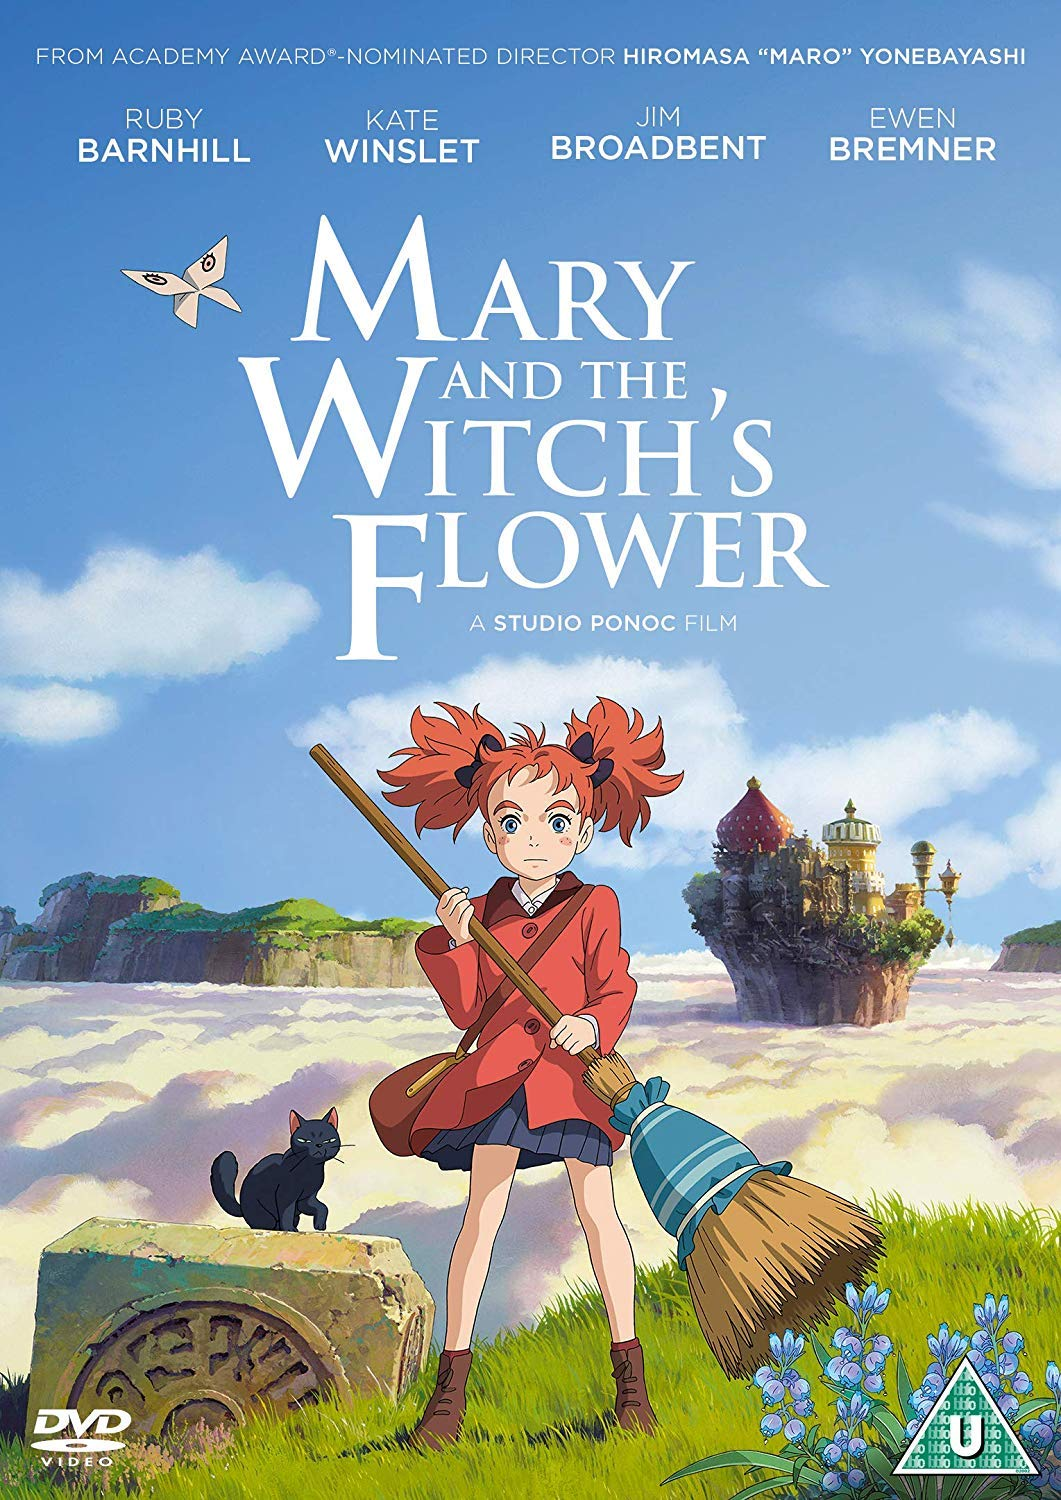 Pildiotsingu mary and the witch's flower tulemus